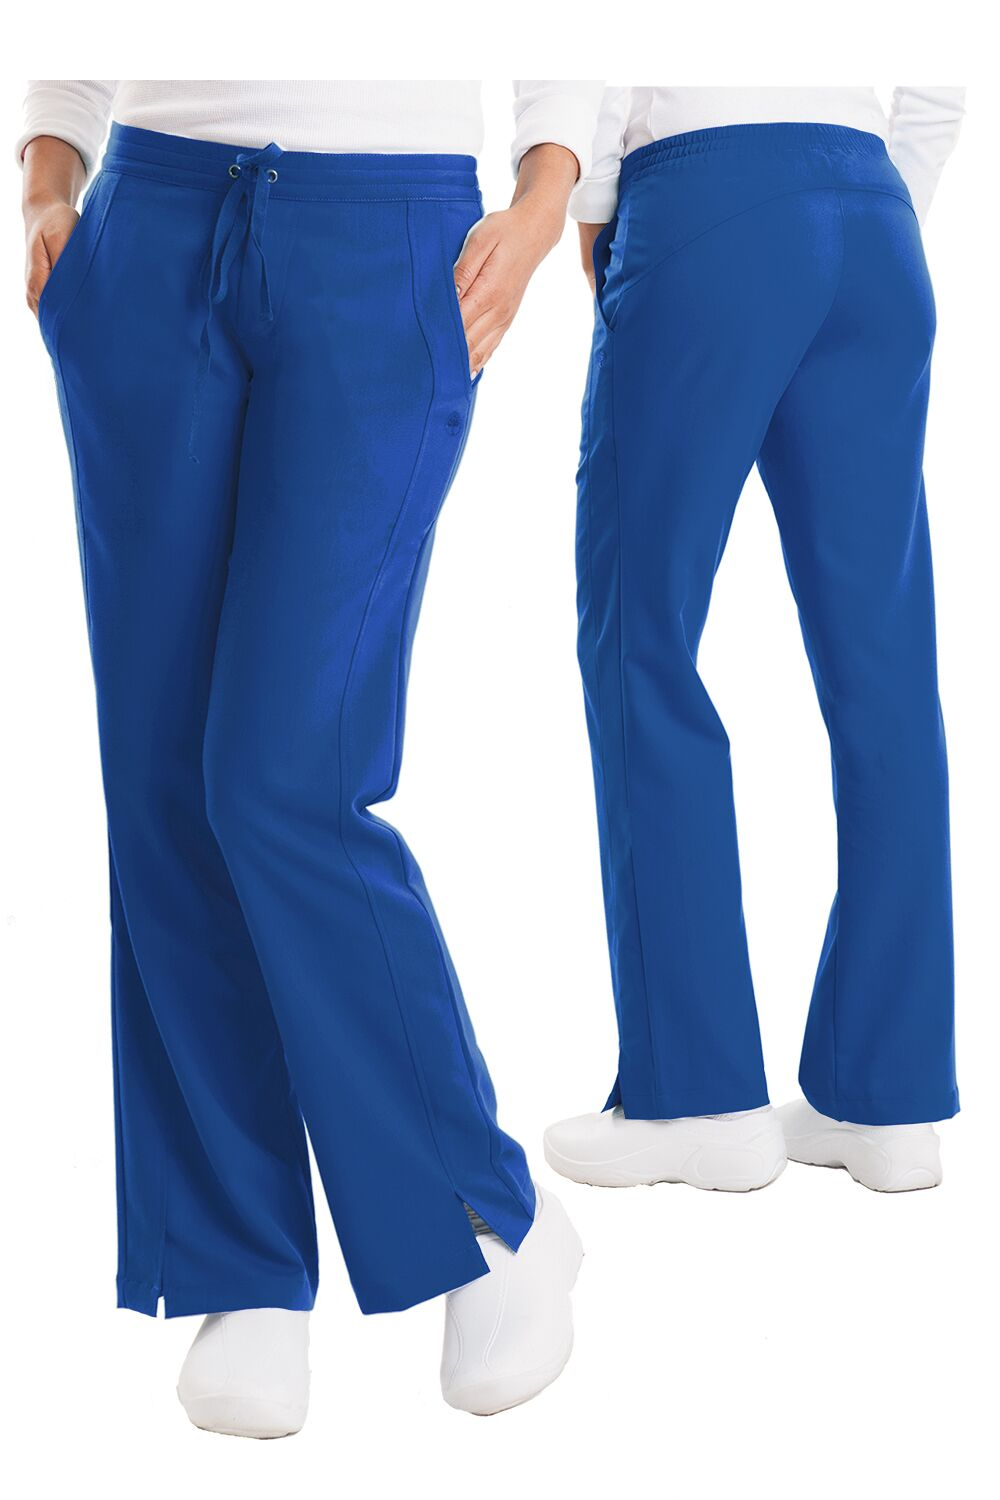 191fe0e4007 HEALING HANDS by Purple Label Tori Pant- Yoga Pant- Modern Fit ...